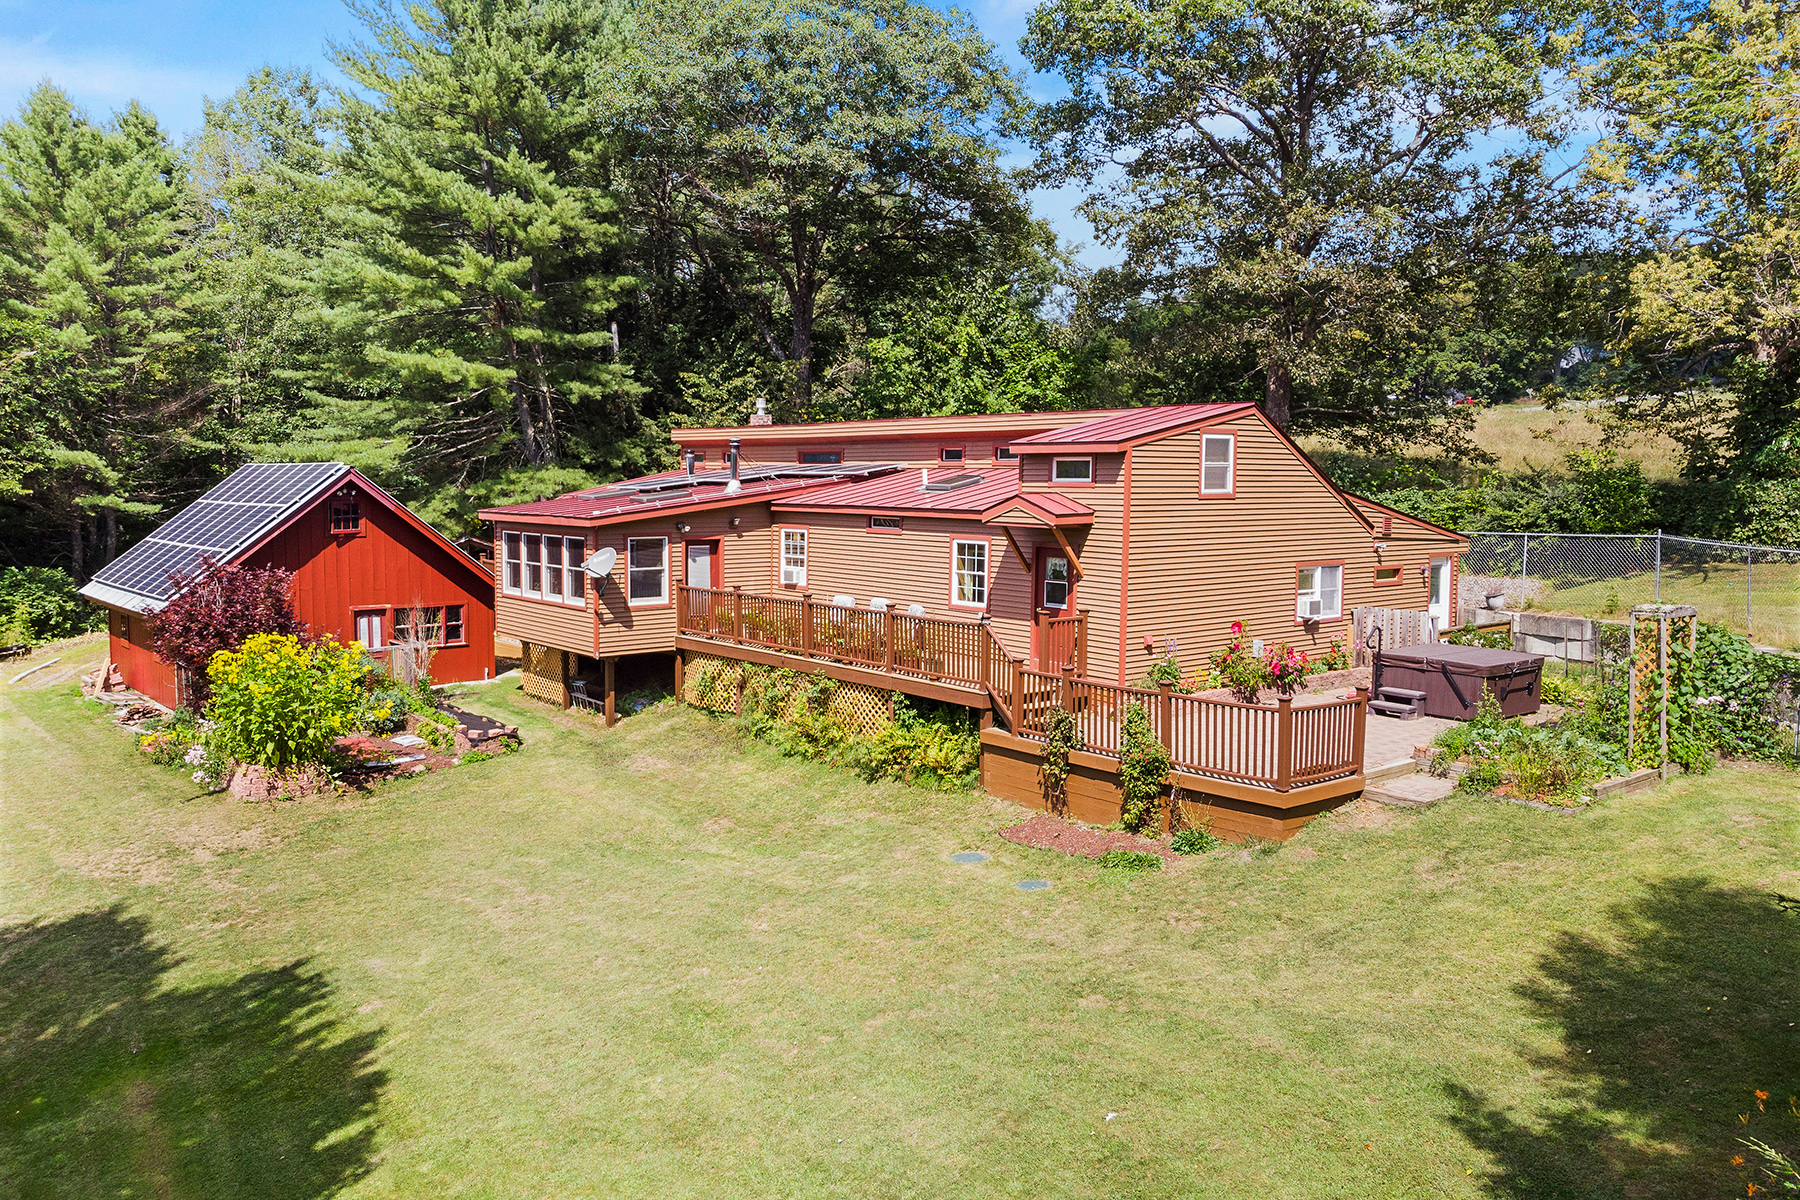 Single Family Homes for Sale at 608 Dairy Hill Road, Royalton 608 Dairy Hill Rd Royalton, Vermont 05068 United States